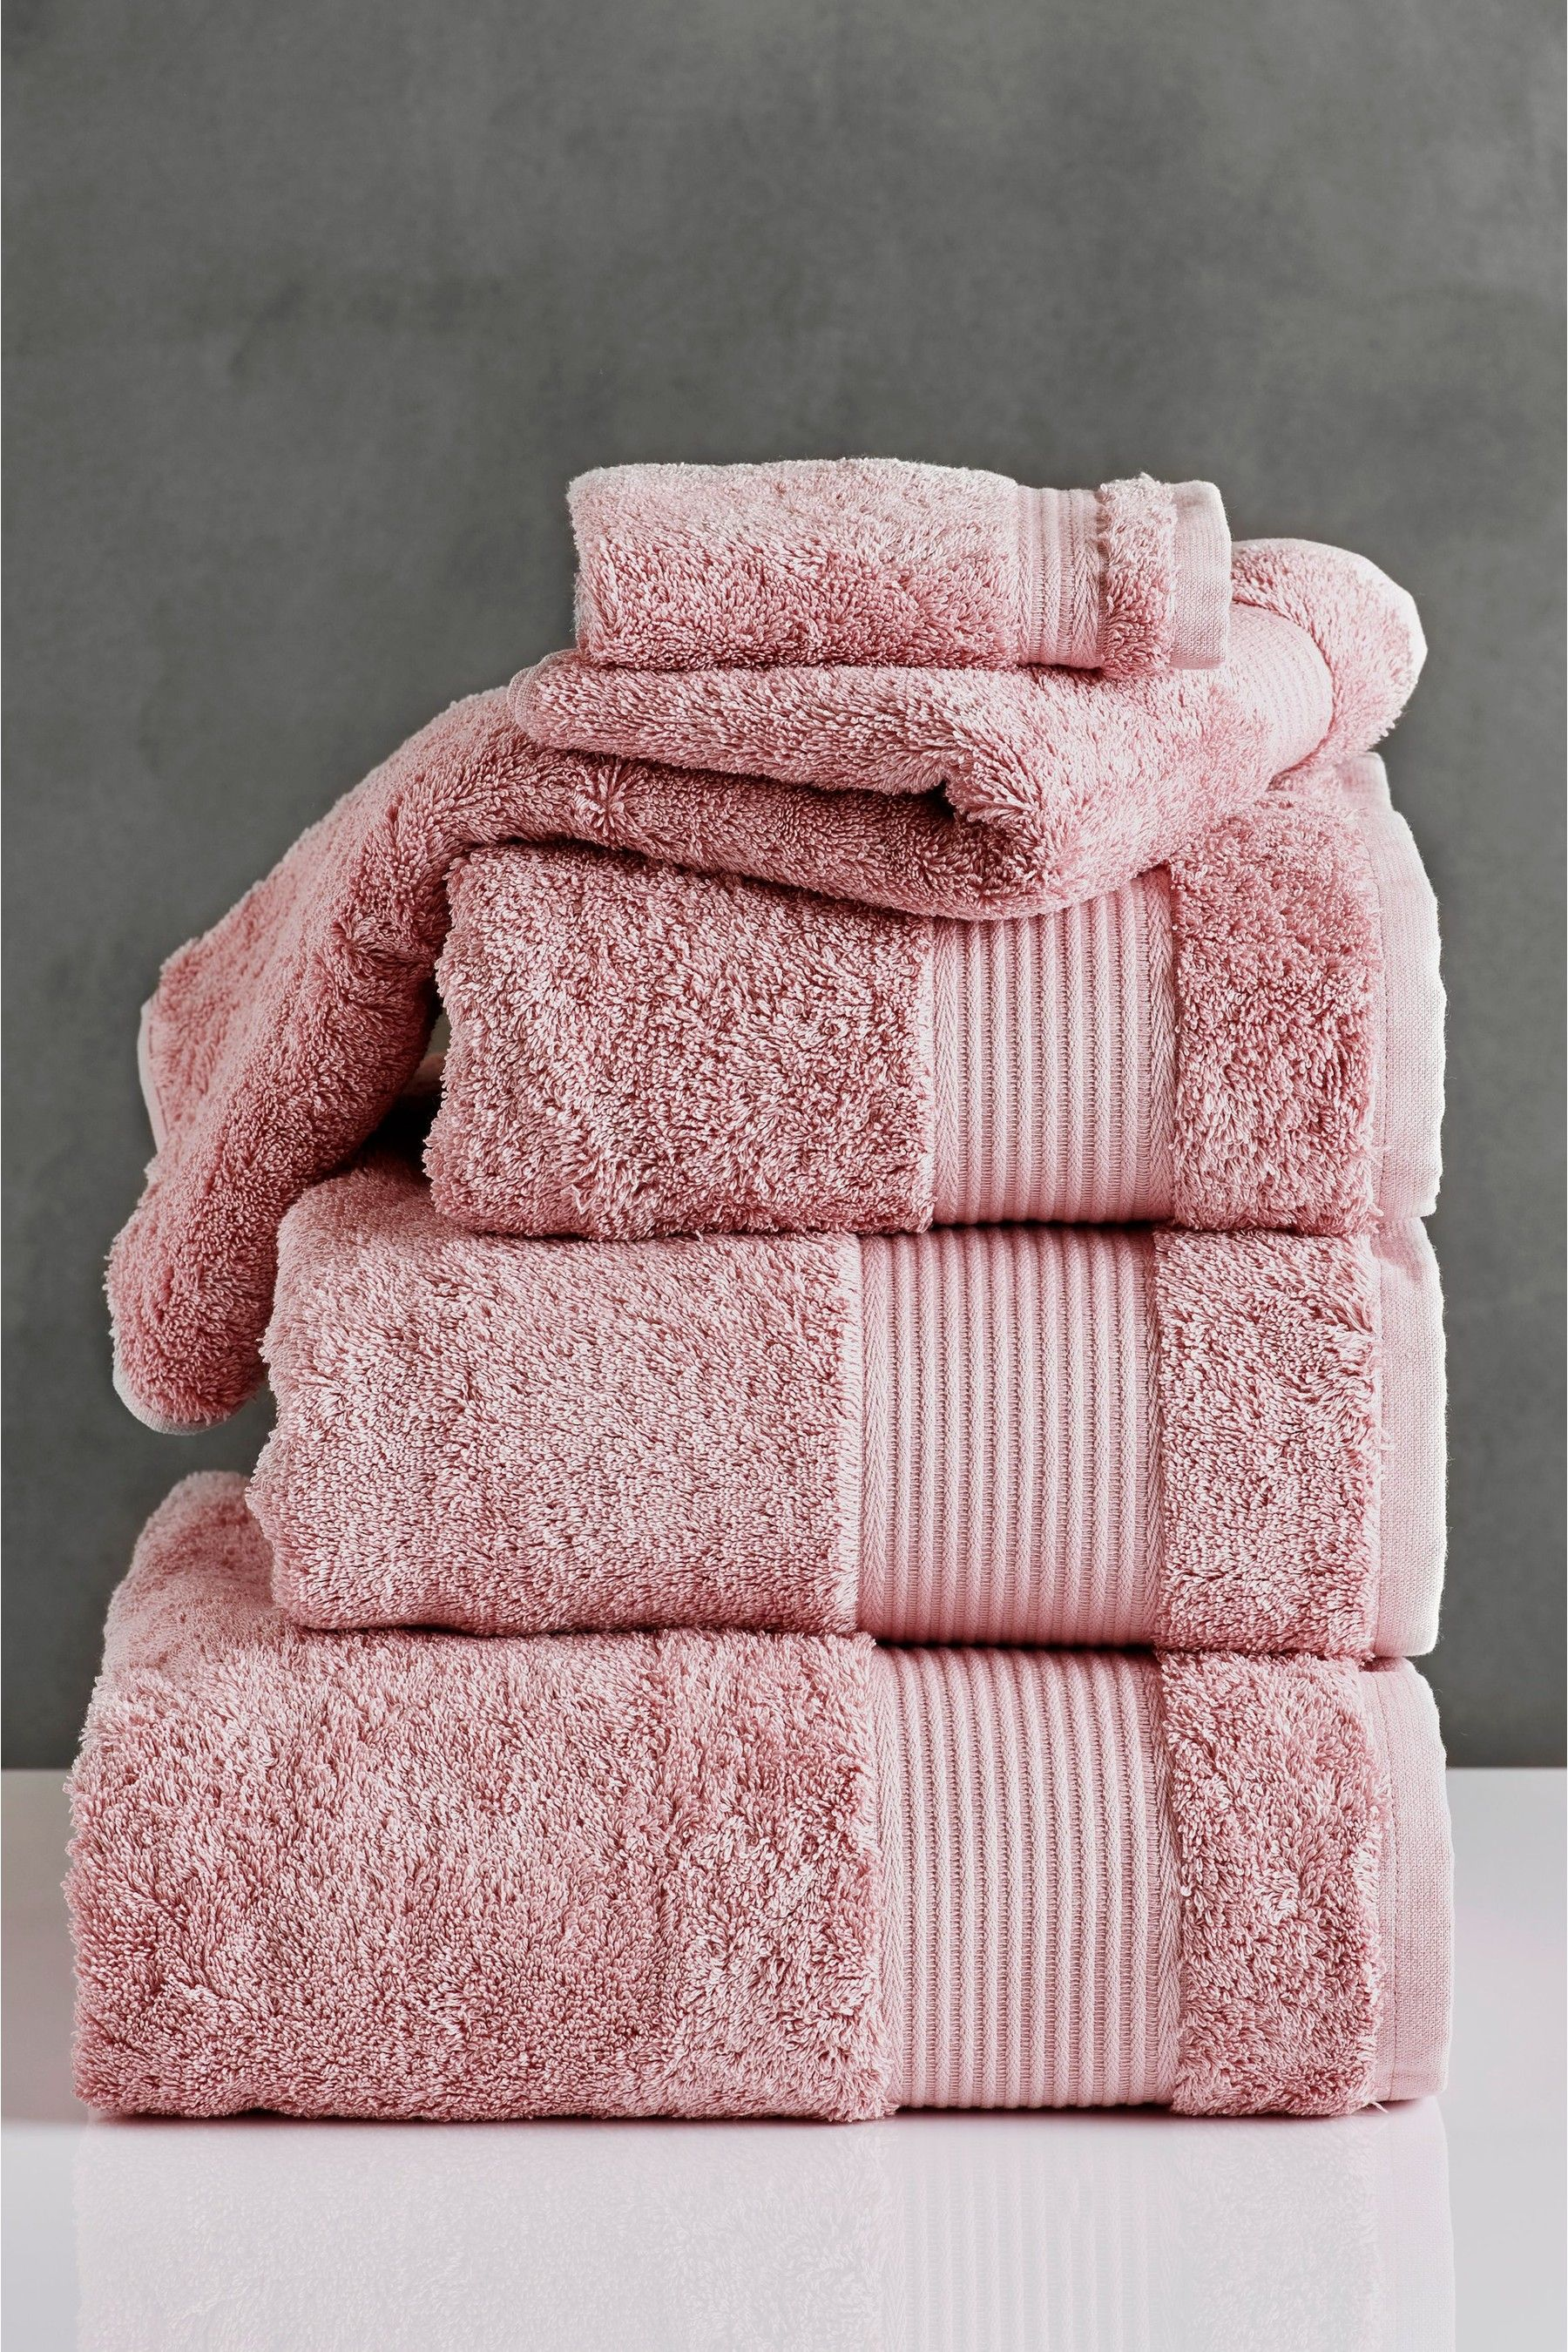 Egyptian Cotton Towels With Images Egyptian Cotton Towels